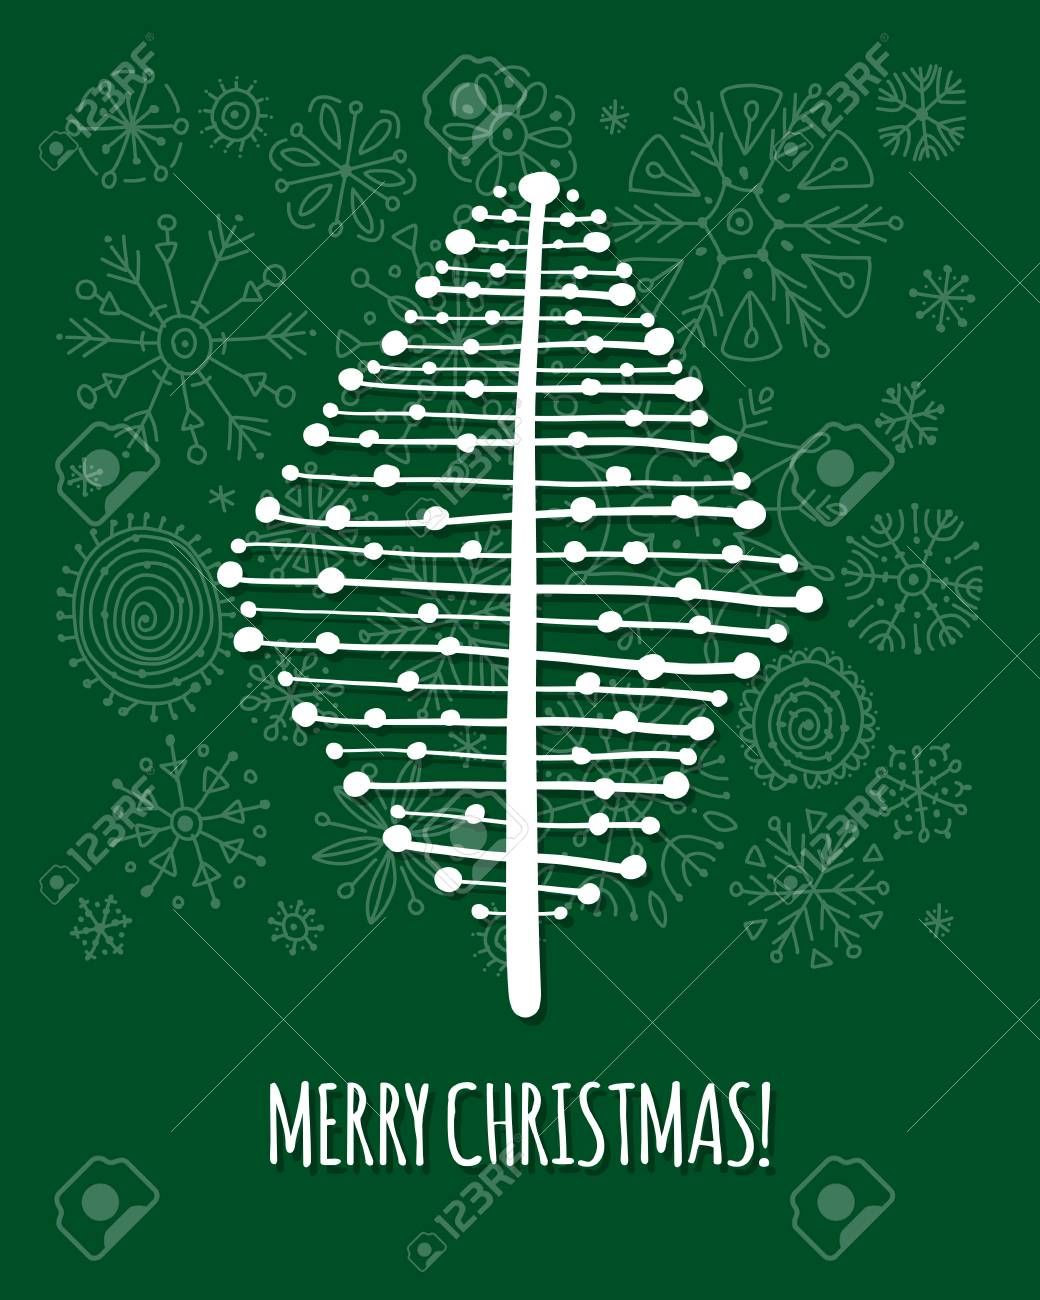 Christmas Tree Greeting Card For Your Design Vector Illustration Illustration Ad Greeting Card Christmas In 2020 Vector Illustration Art Design Illustration